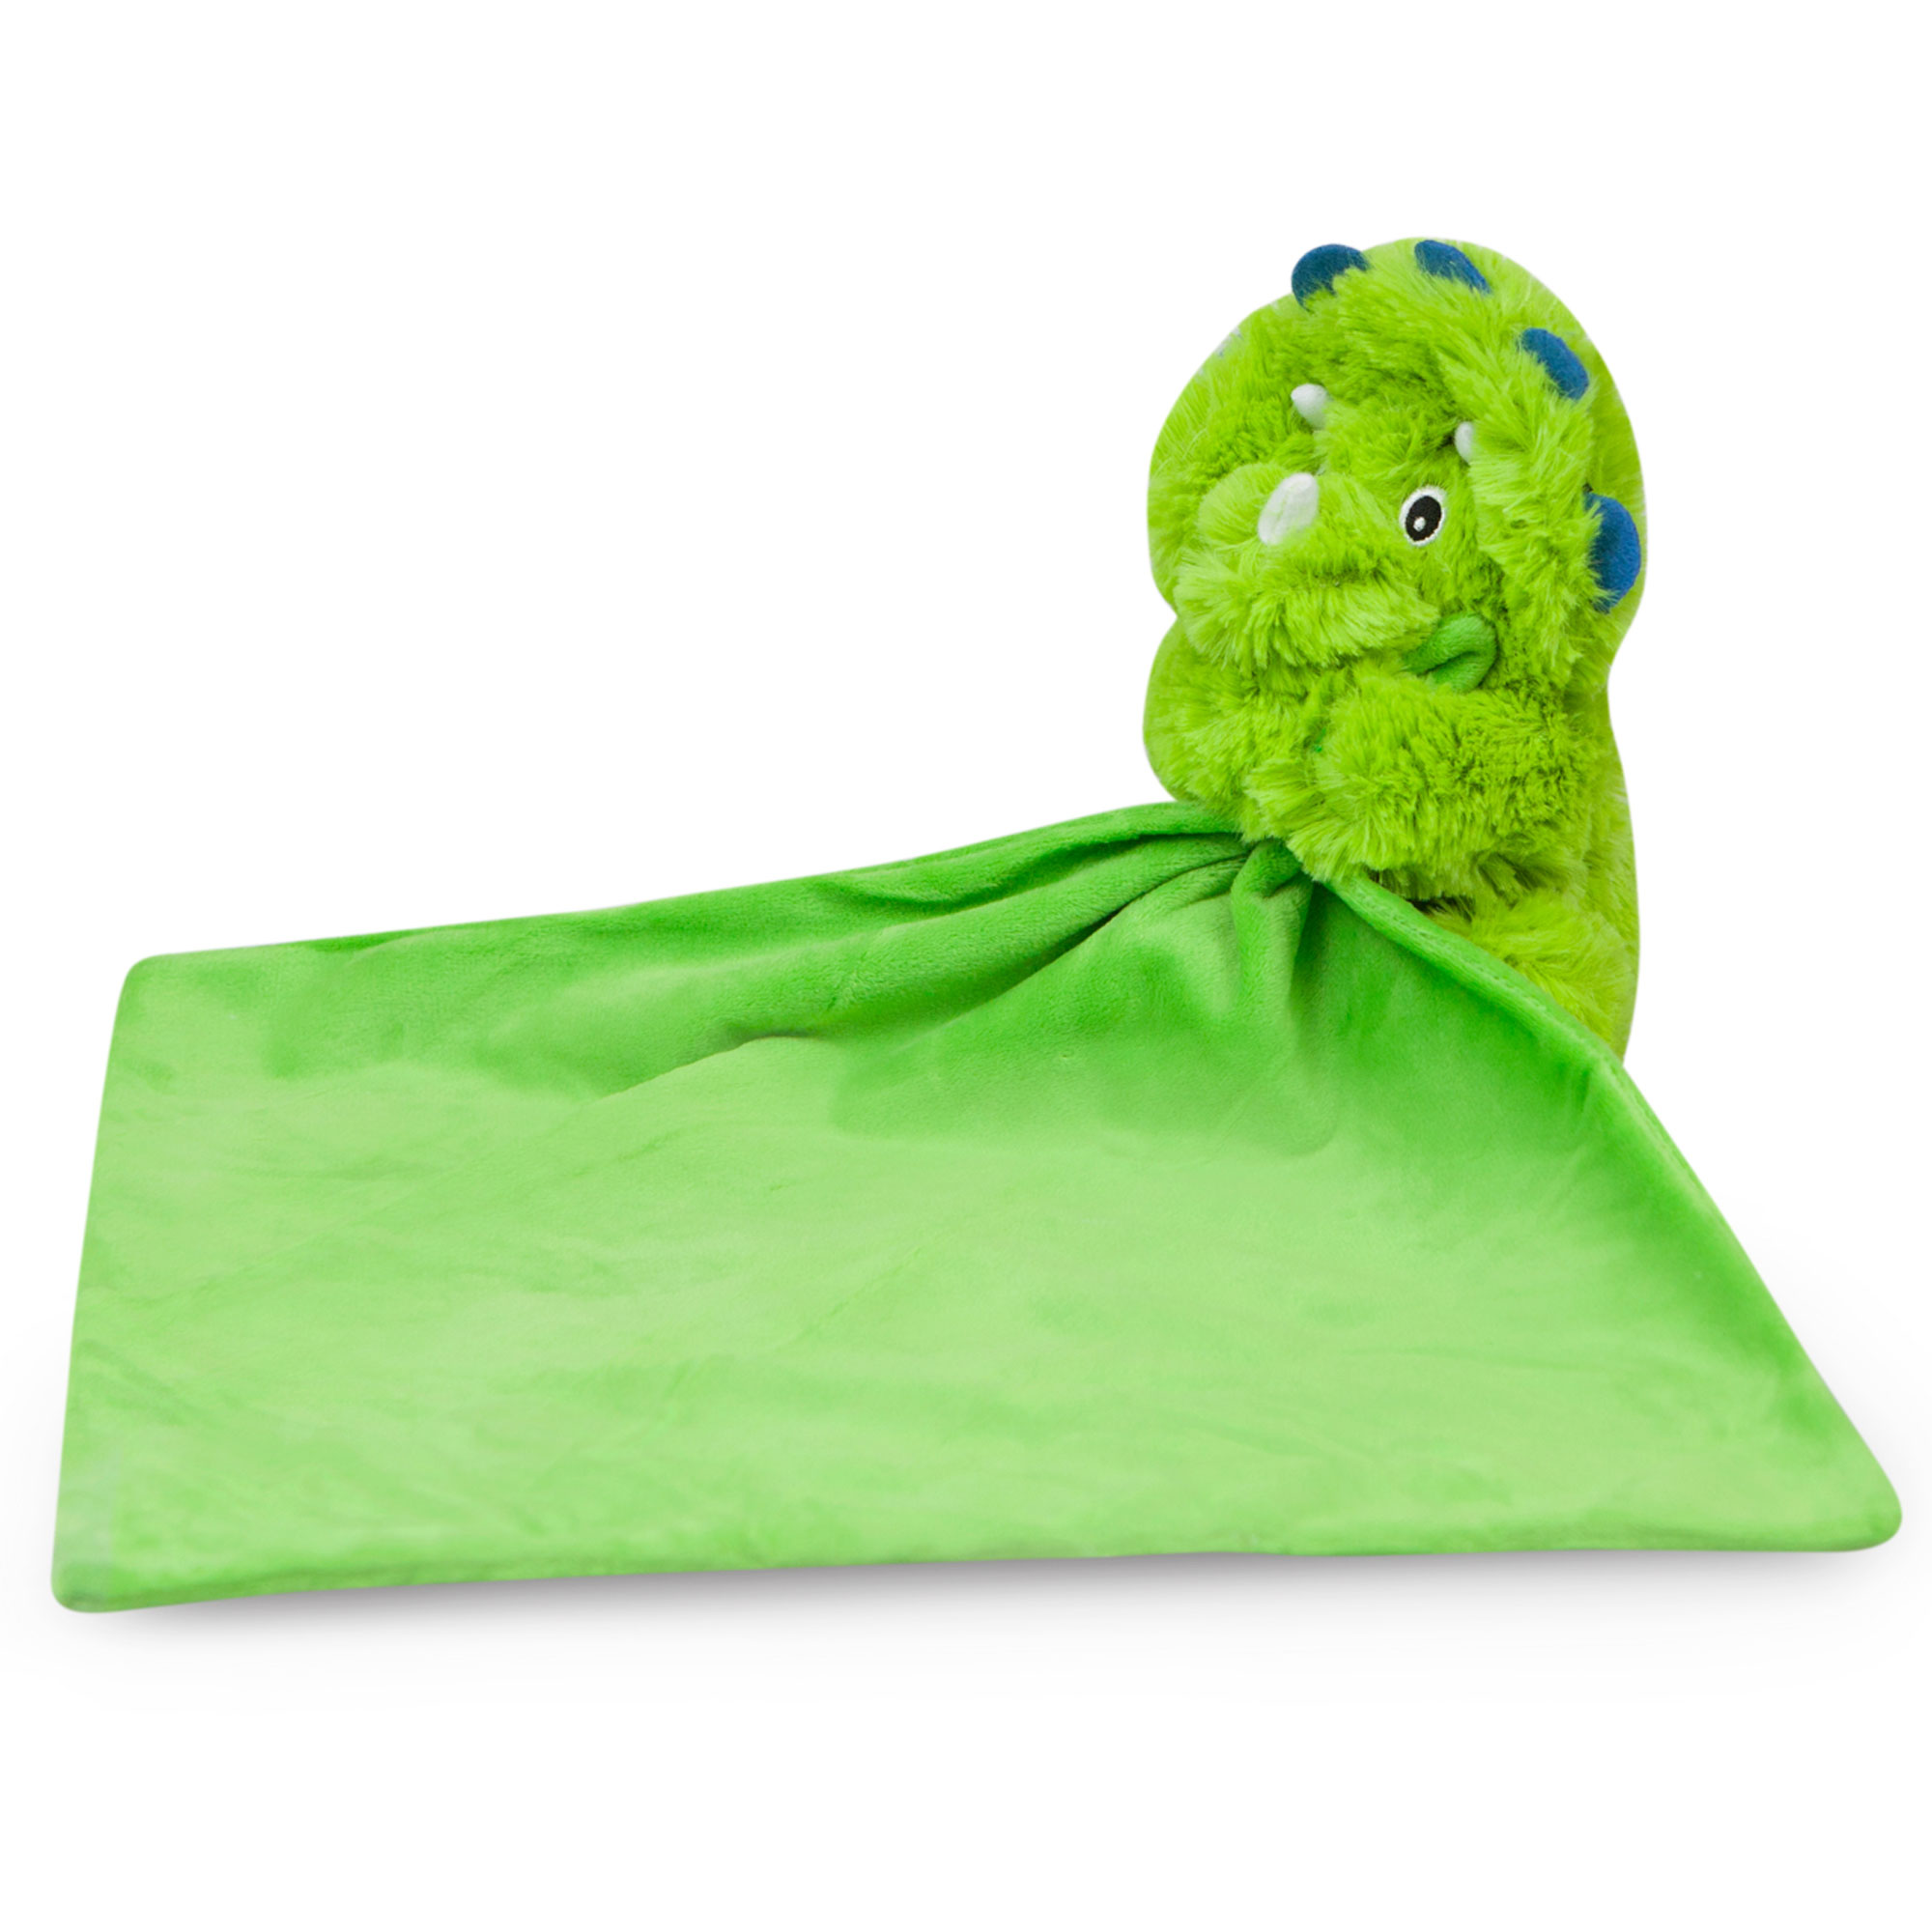 Waddle Rattle Dinosaur Toy Baby Blankie Stuffed Animal Security Blanket Dino Green by Waddle and Friends